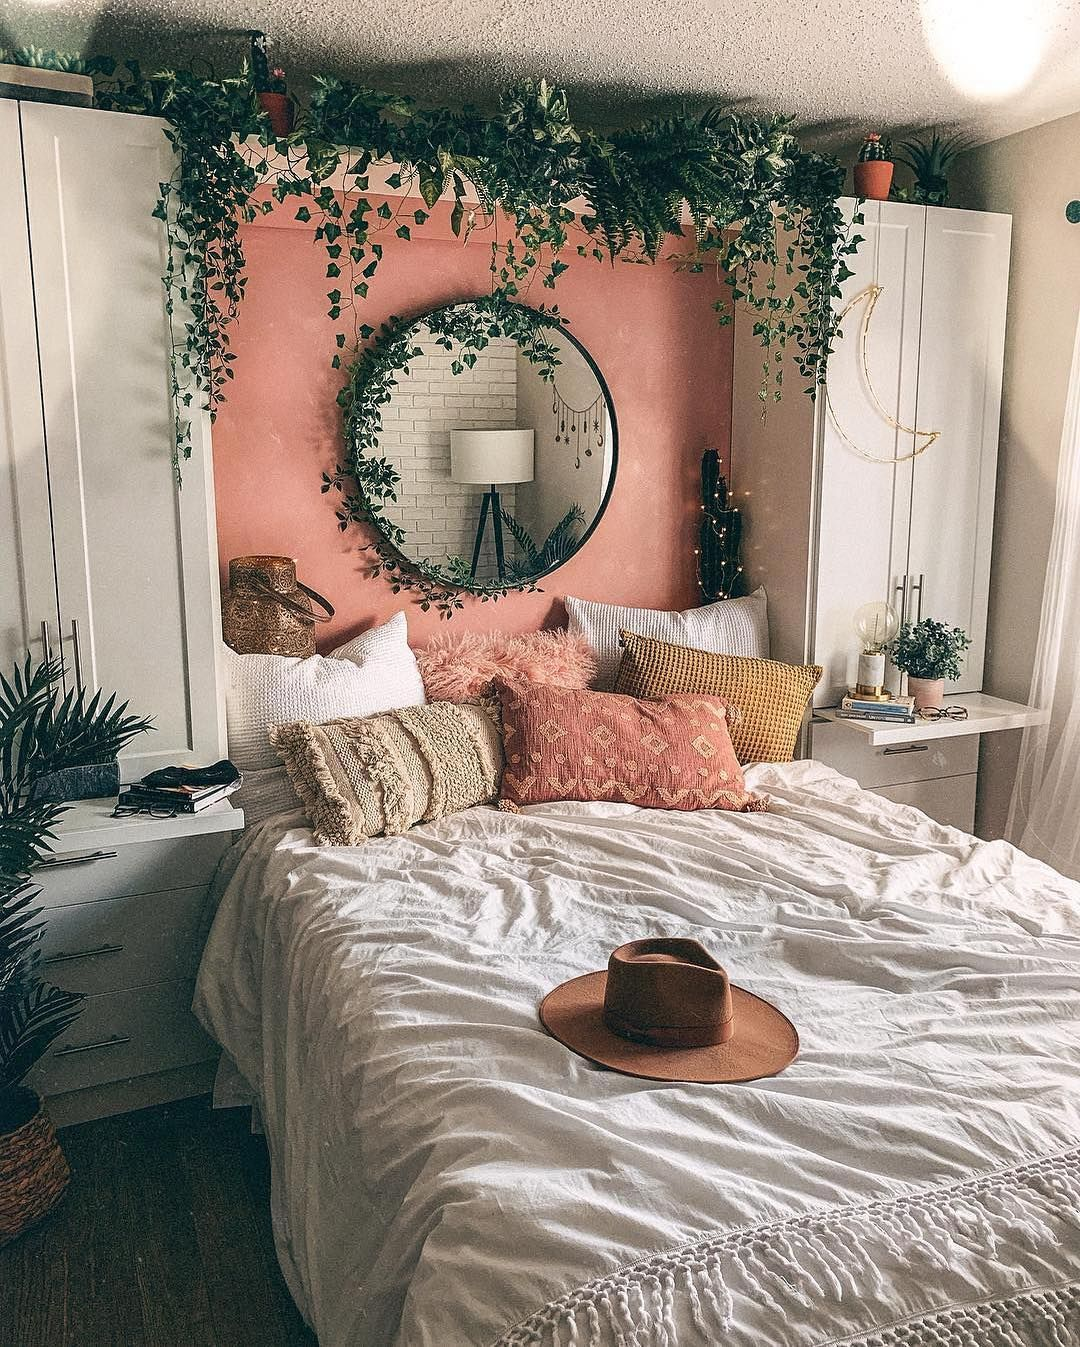 Room Goals Bedroom Design Of The Day Follow Elcune Follow Elcune Related Tags You H Cool Dorm Rooms Aesthetic Bedroom Room Ideas Bedroom Bedroom decor ideas apartment